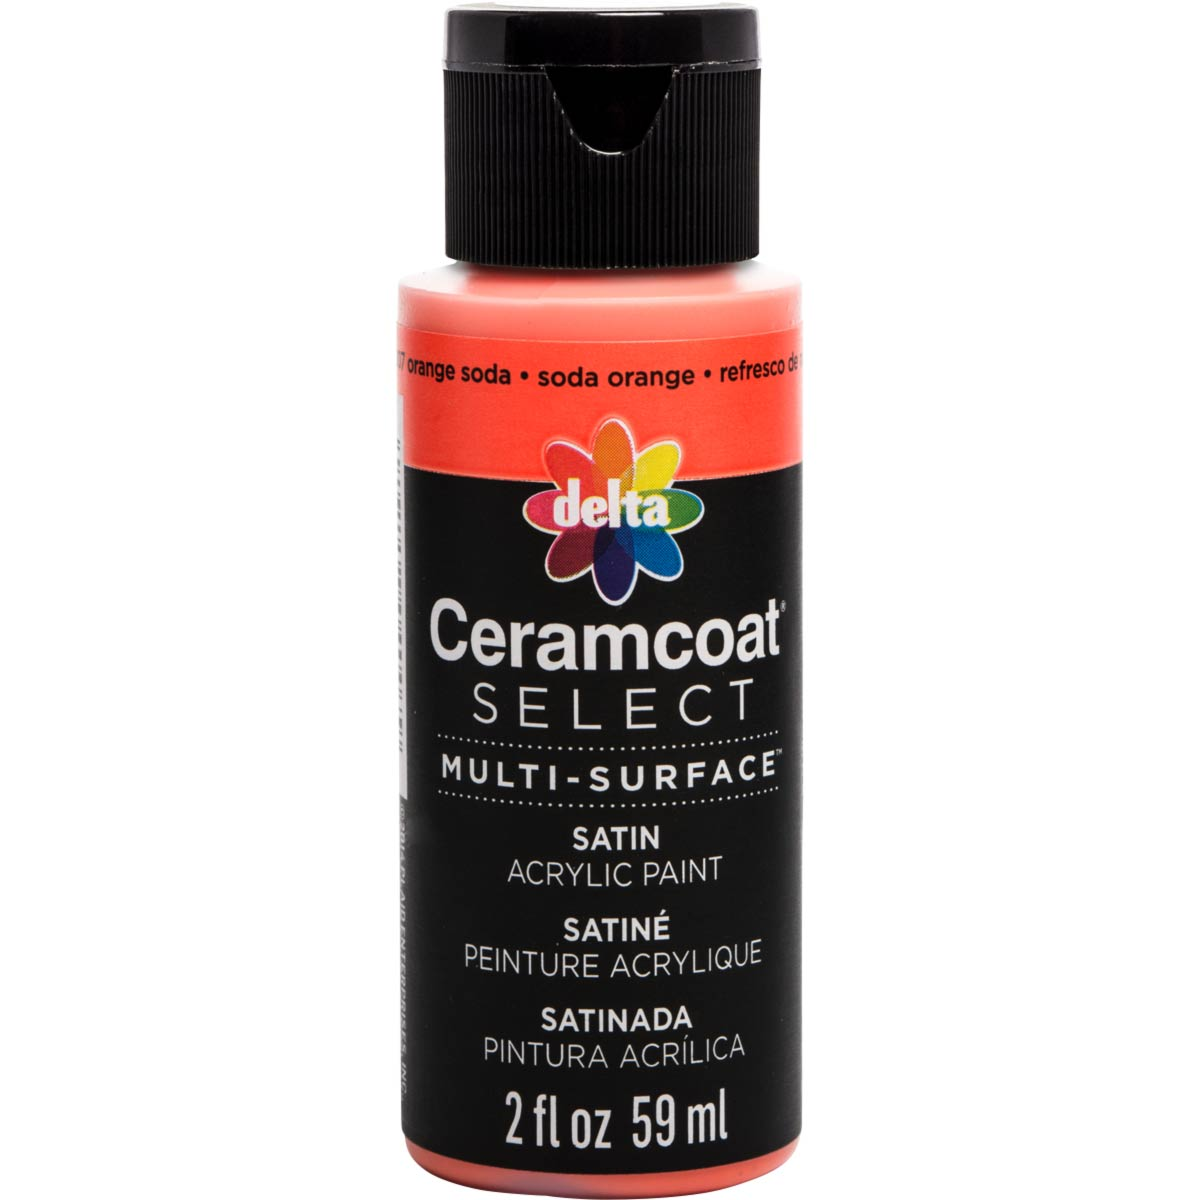 Delta Ceramcoat ® Select Multi-Surface Acrylic Paint - Satin - Orange Soda, 2 oz.